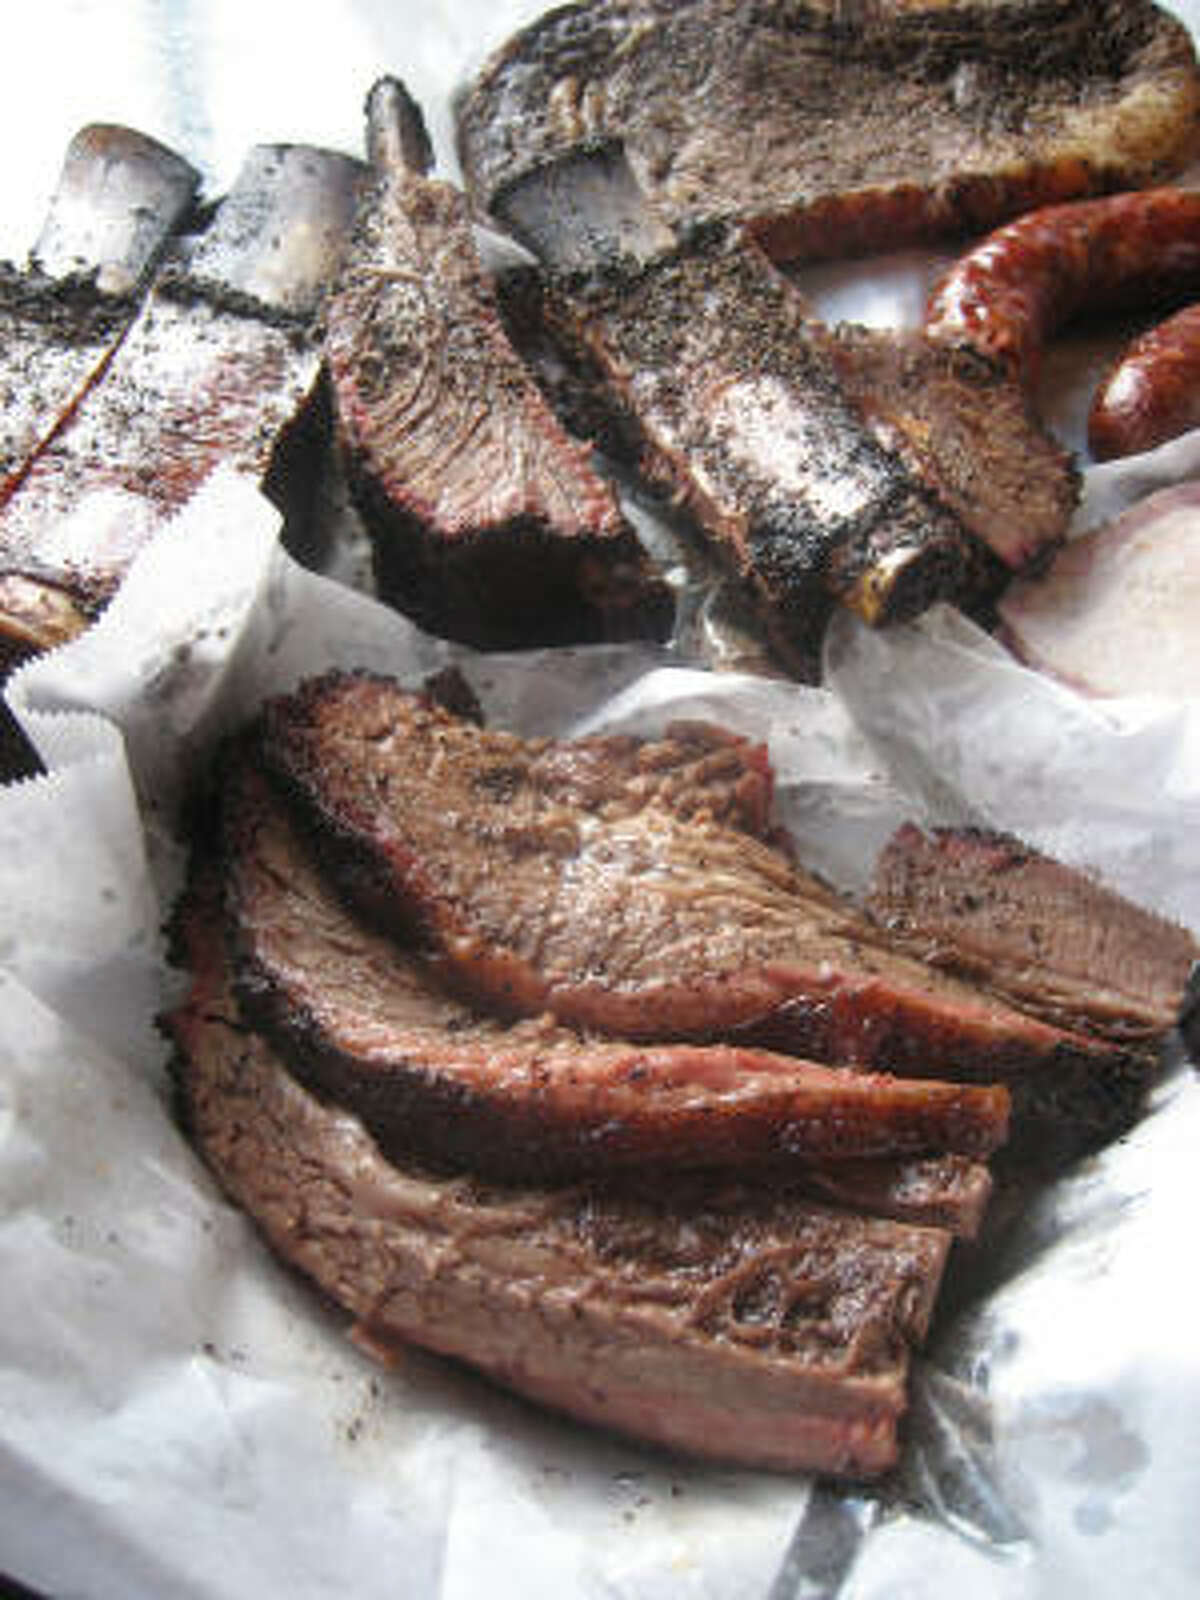 The famous brisket (foreground) from Louie Mueller Barbecue in Taylor.